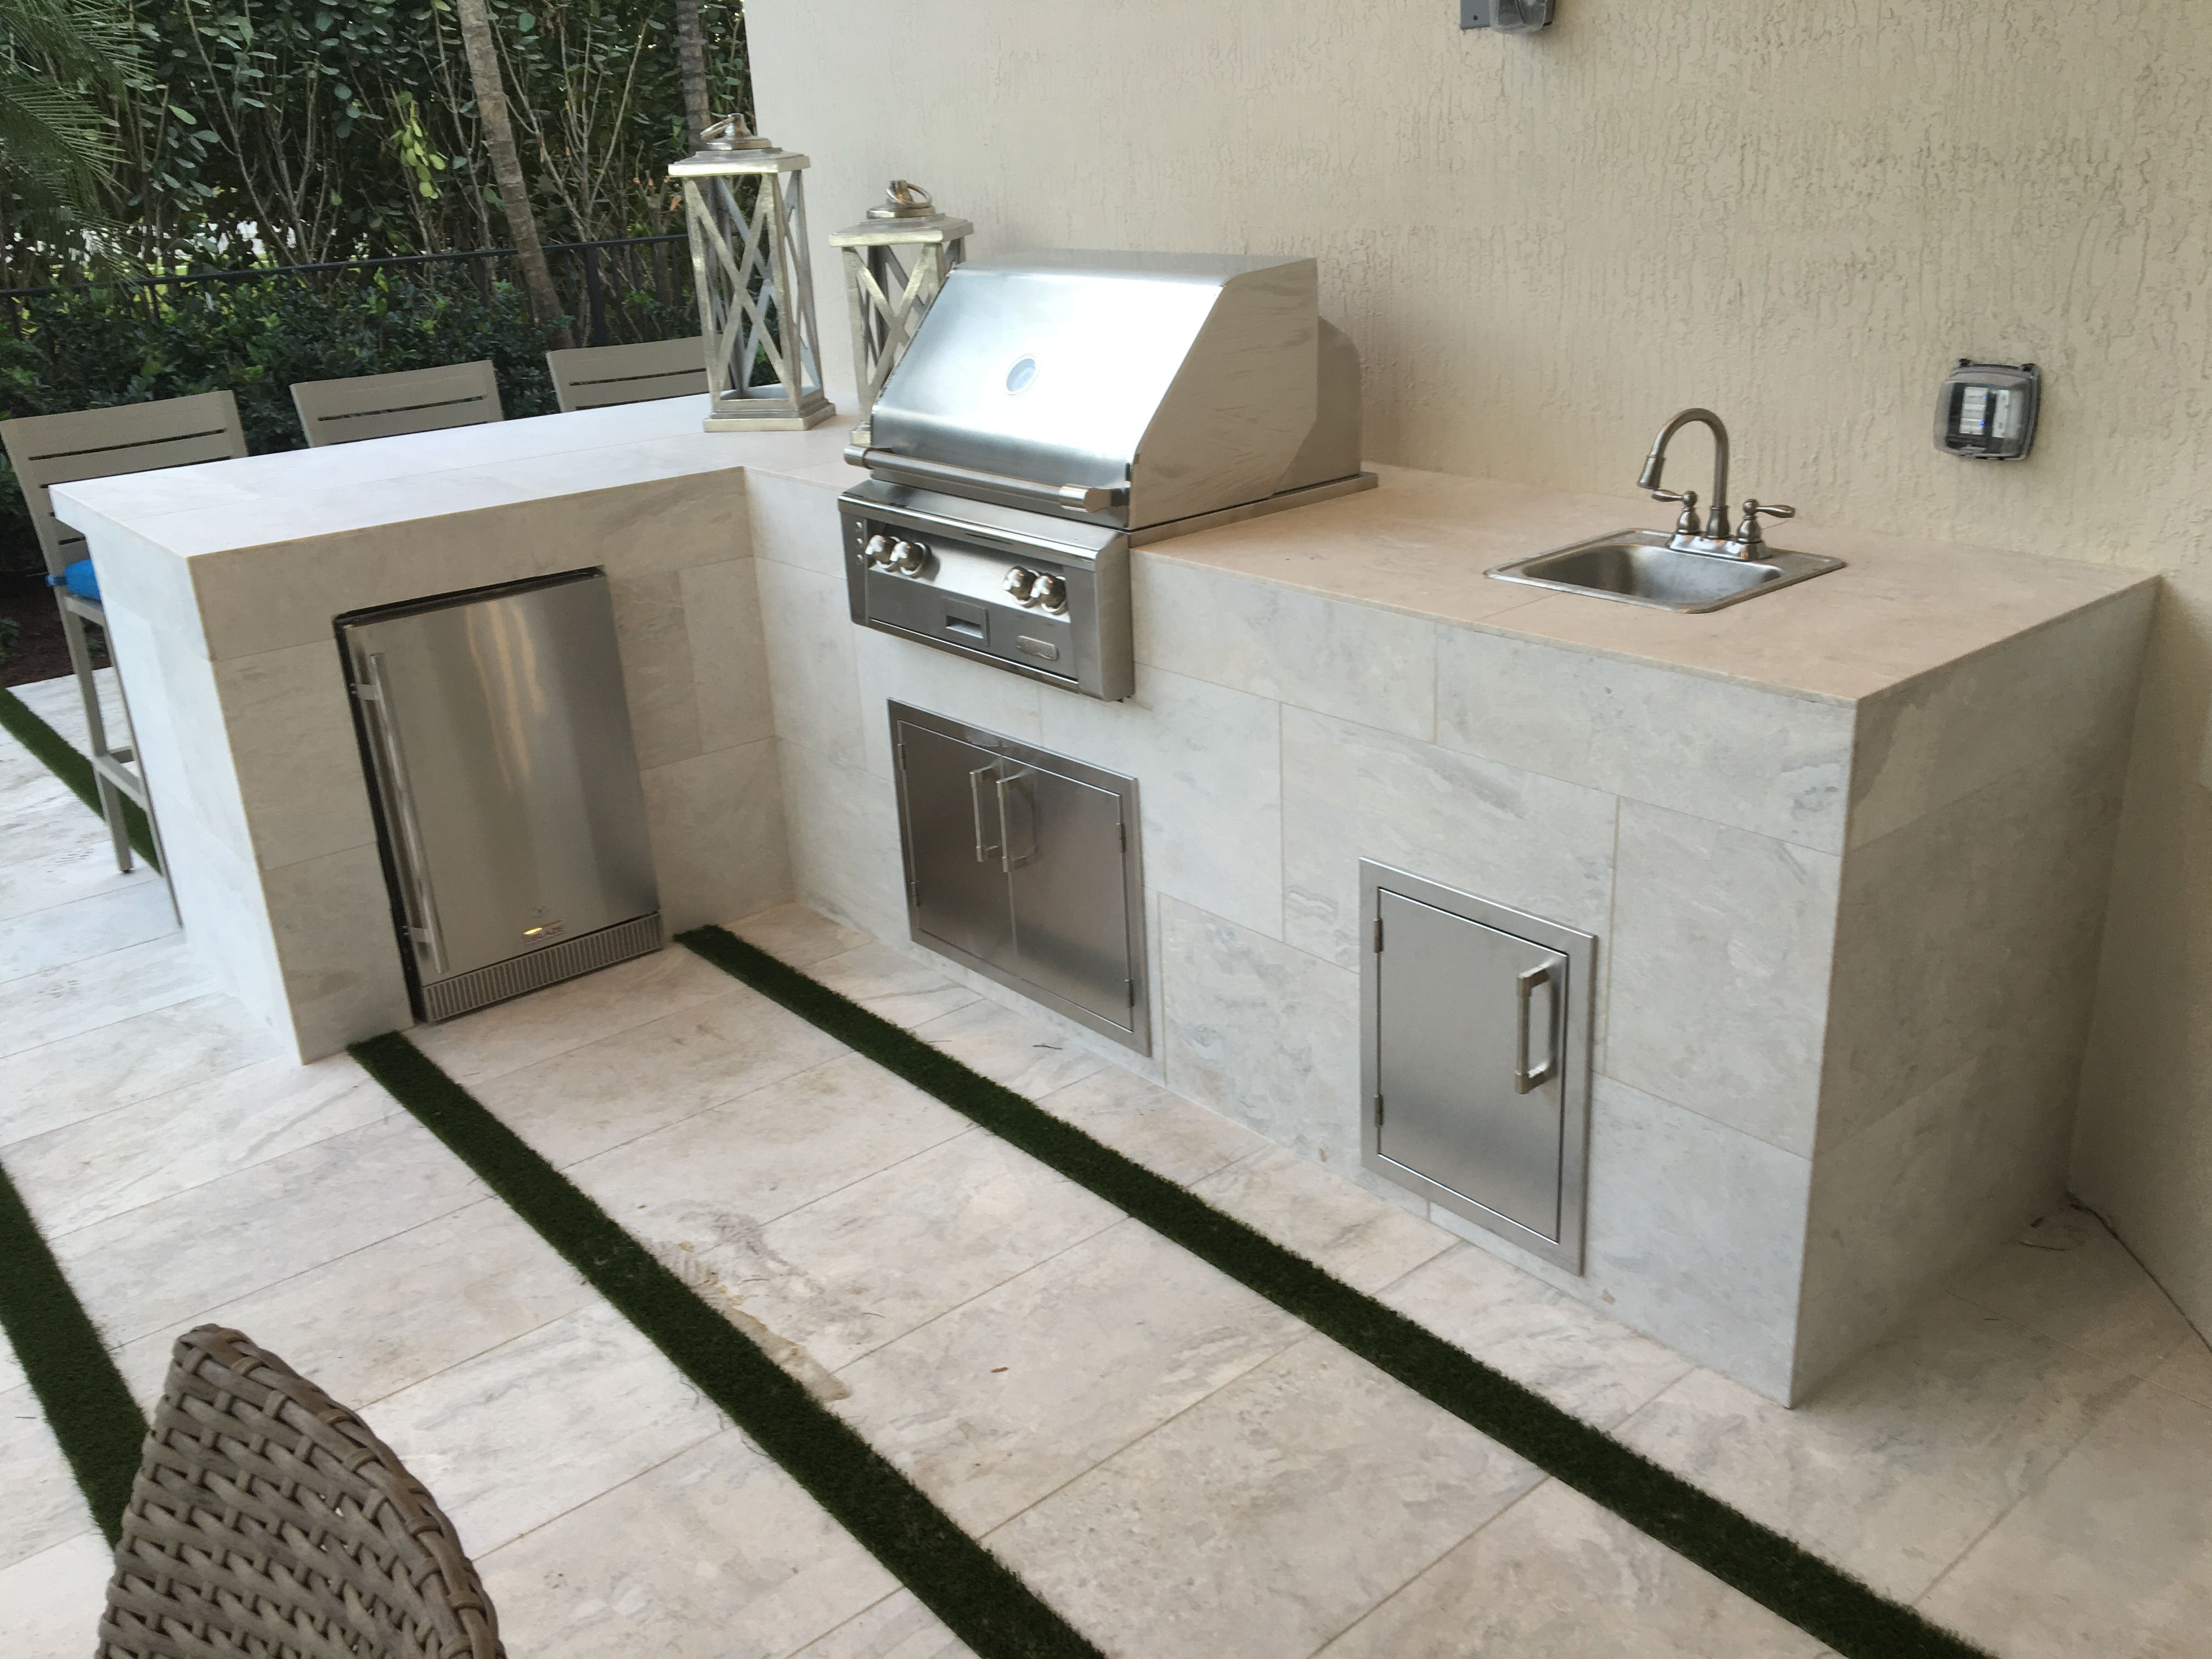 Just Finished Custom Island With Alfresco Alxe 30 Grill Sink And Refrigerator For Toll Brothers Outdoor Kitchen Design Small Outdoor Kitchens Outdoor Kitchen